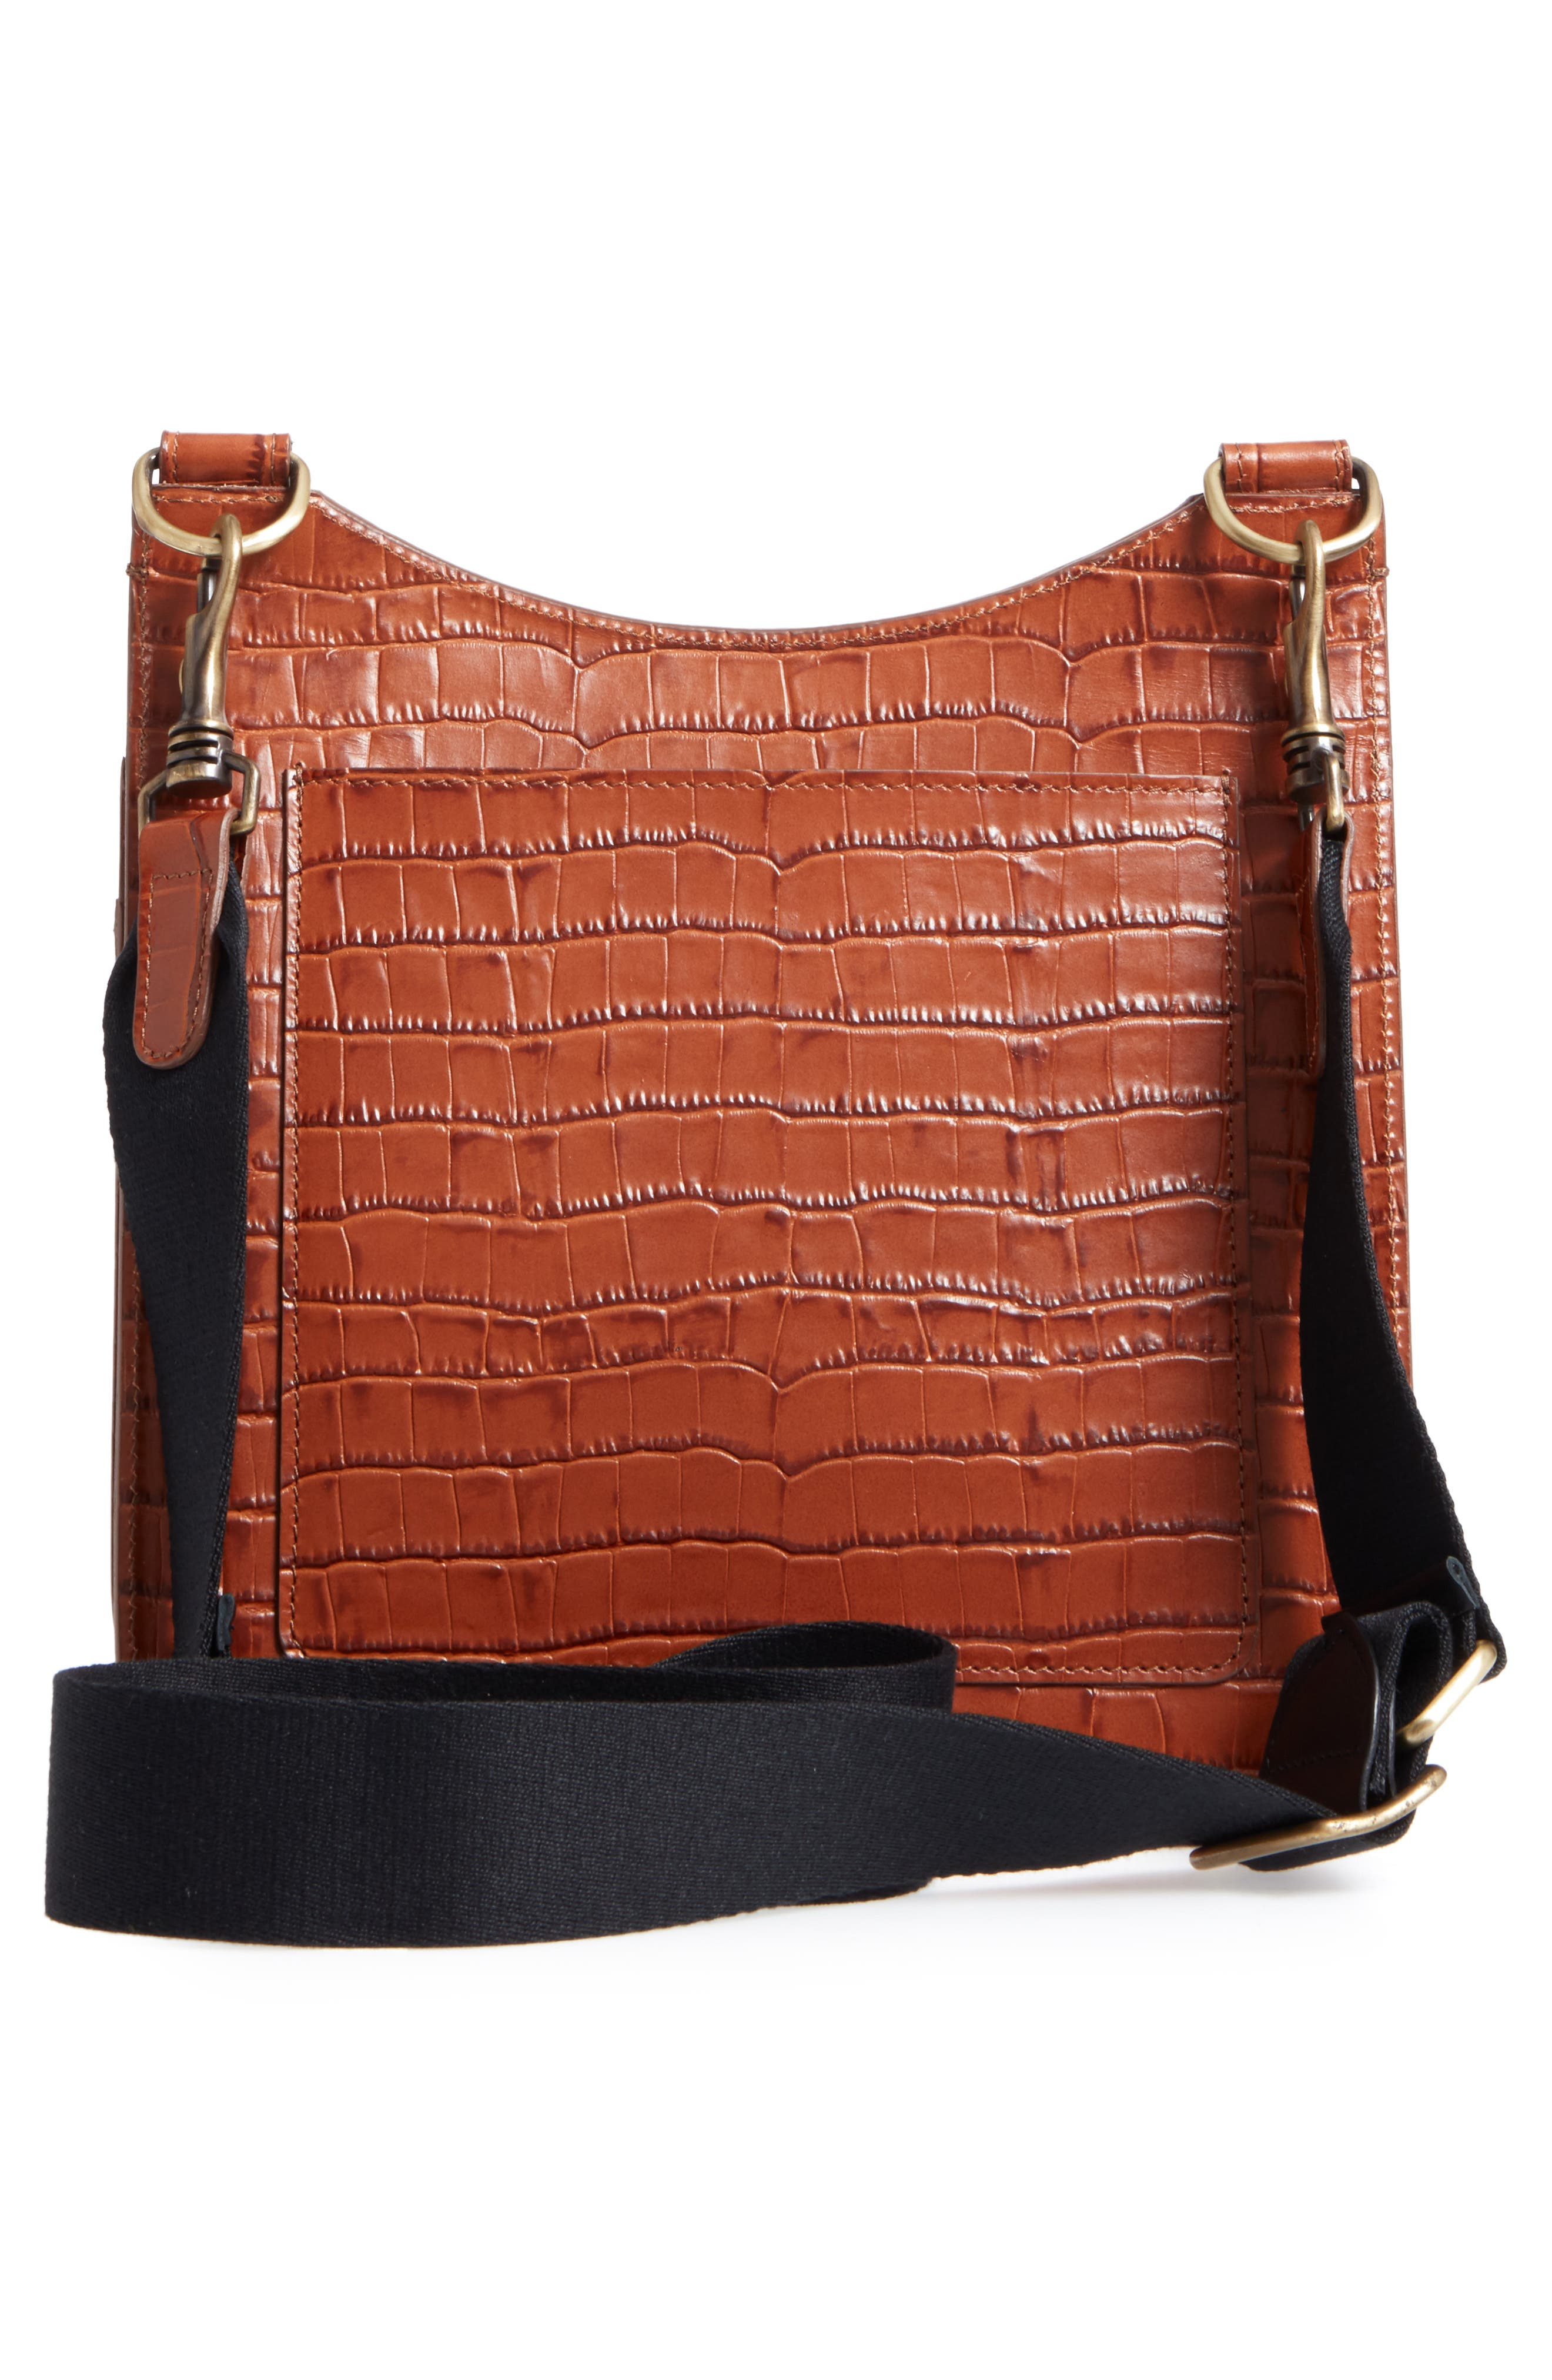 Tall Equestrian Croc Embossed Leather Crossbody Bag,                             Alternate thumbnail 3, color,                             200